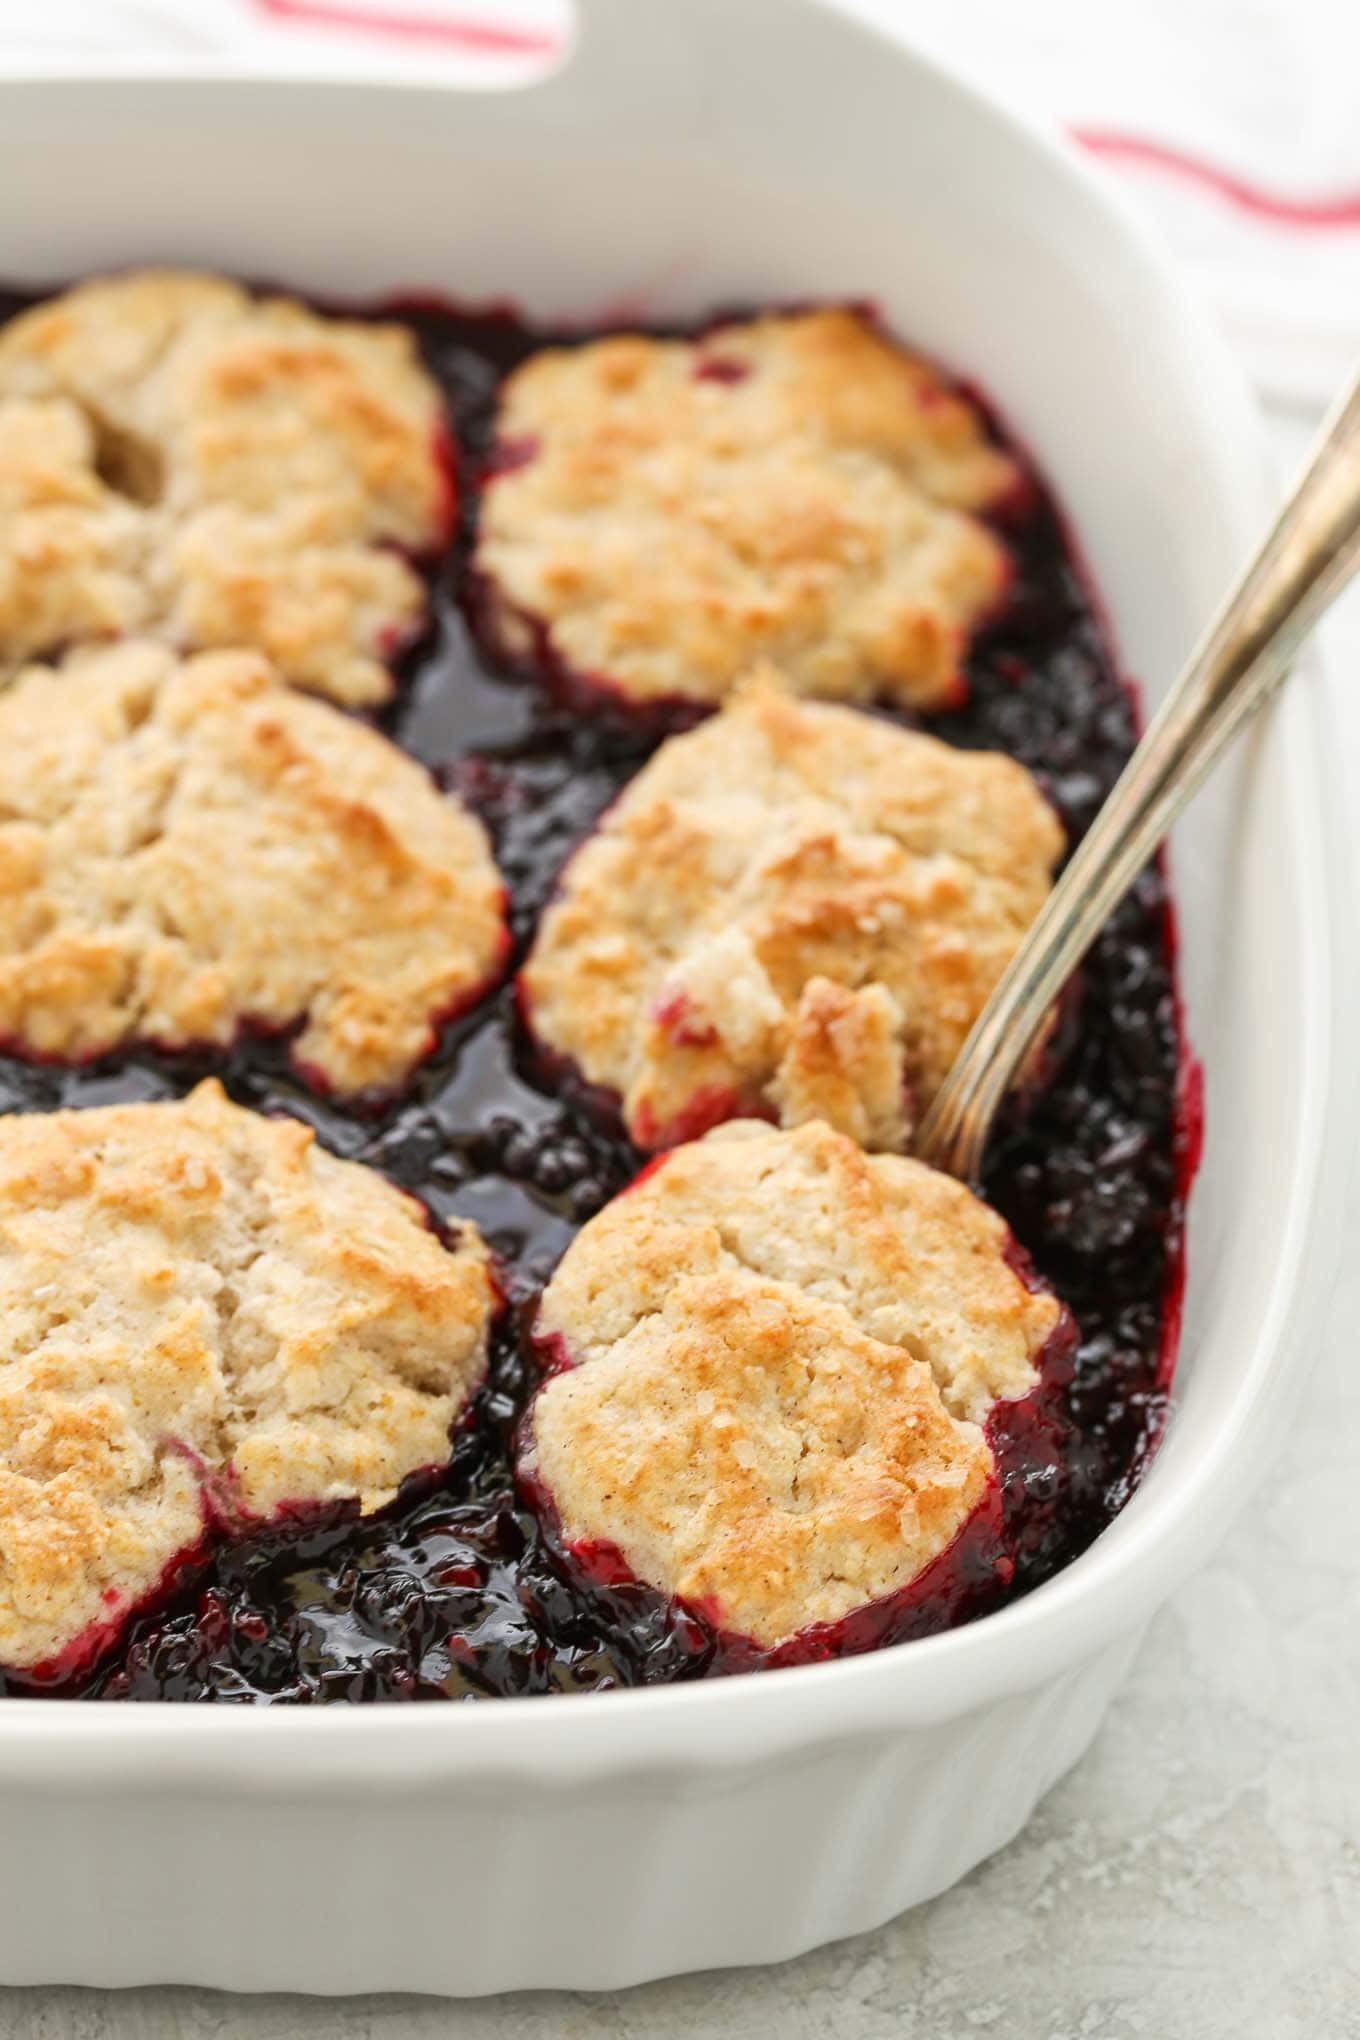 This Blackberry Cobbler features a sweet blackberry filling and a cinnamon sugar biscuit topping. You can even use frozen blackberries in this cobbler so you can enjoy it all year long!